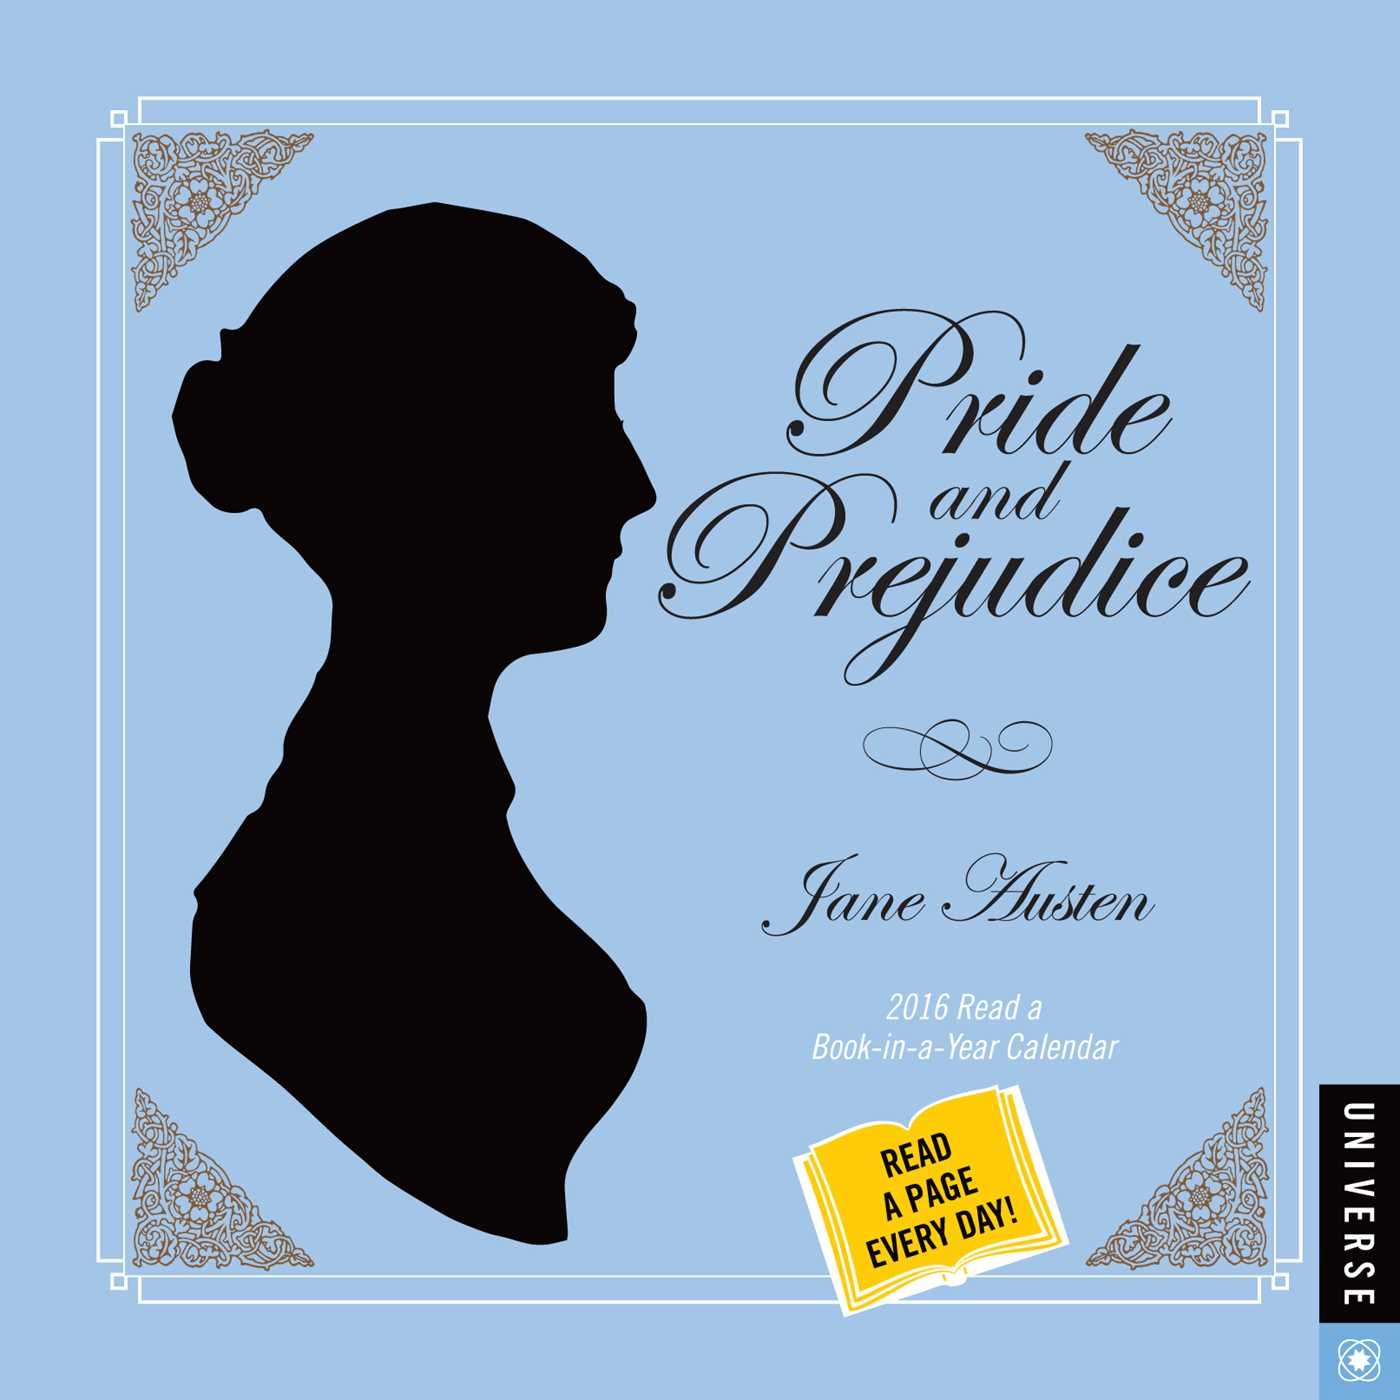 pride and prejudice 2016 a book in a year day to day calendar pride and prejudice 2016 a book in a year day to day calendar jane austen 0676728029571 com books